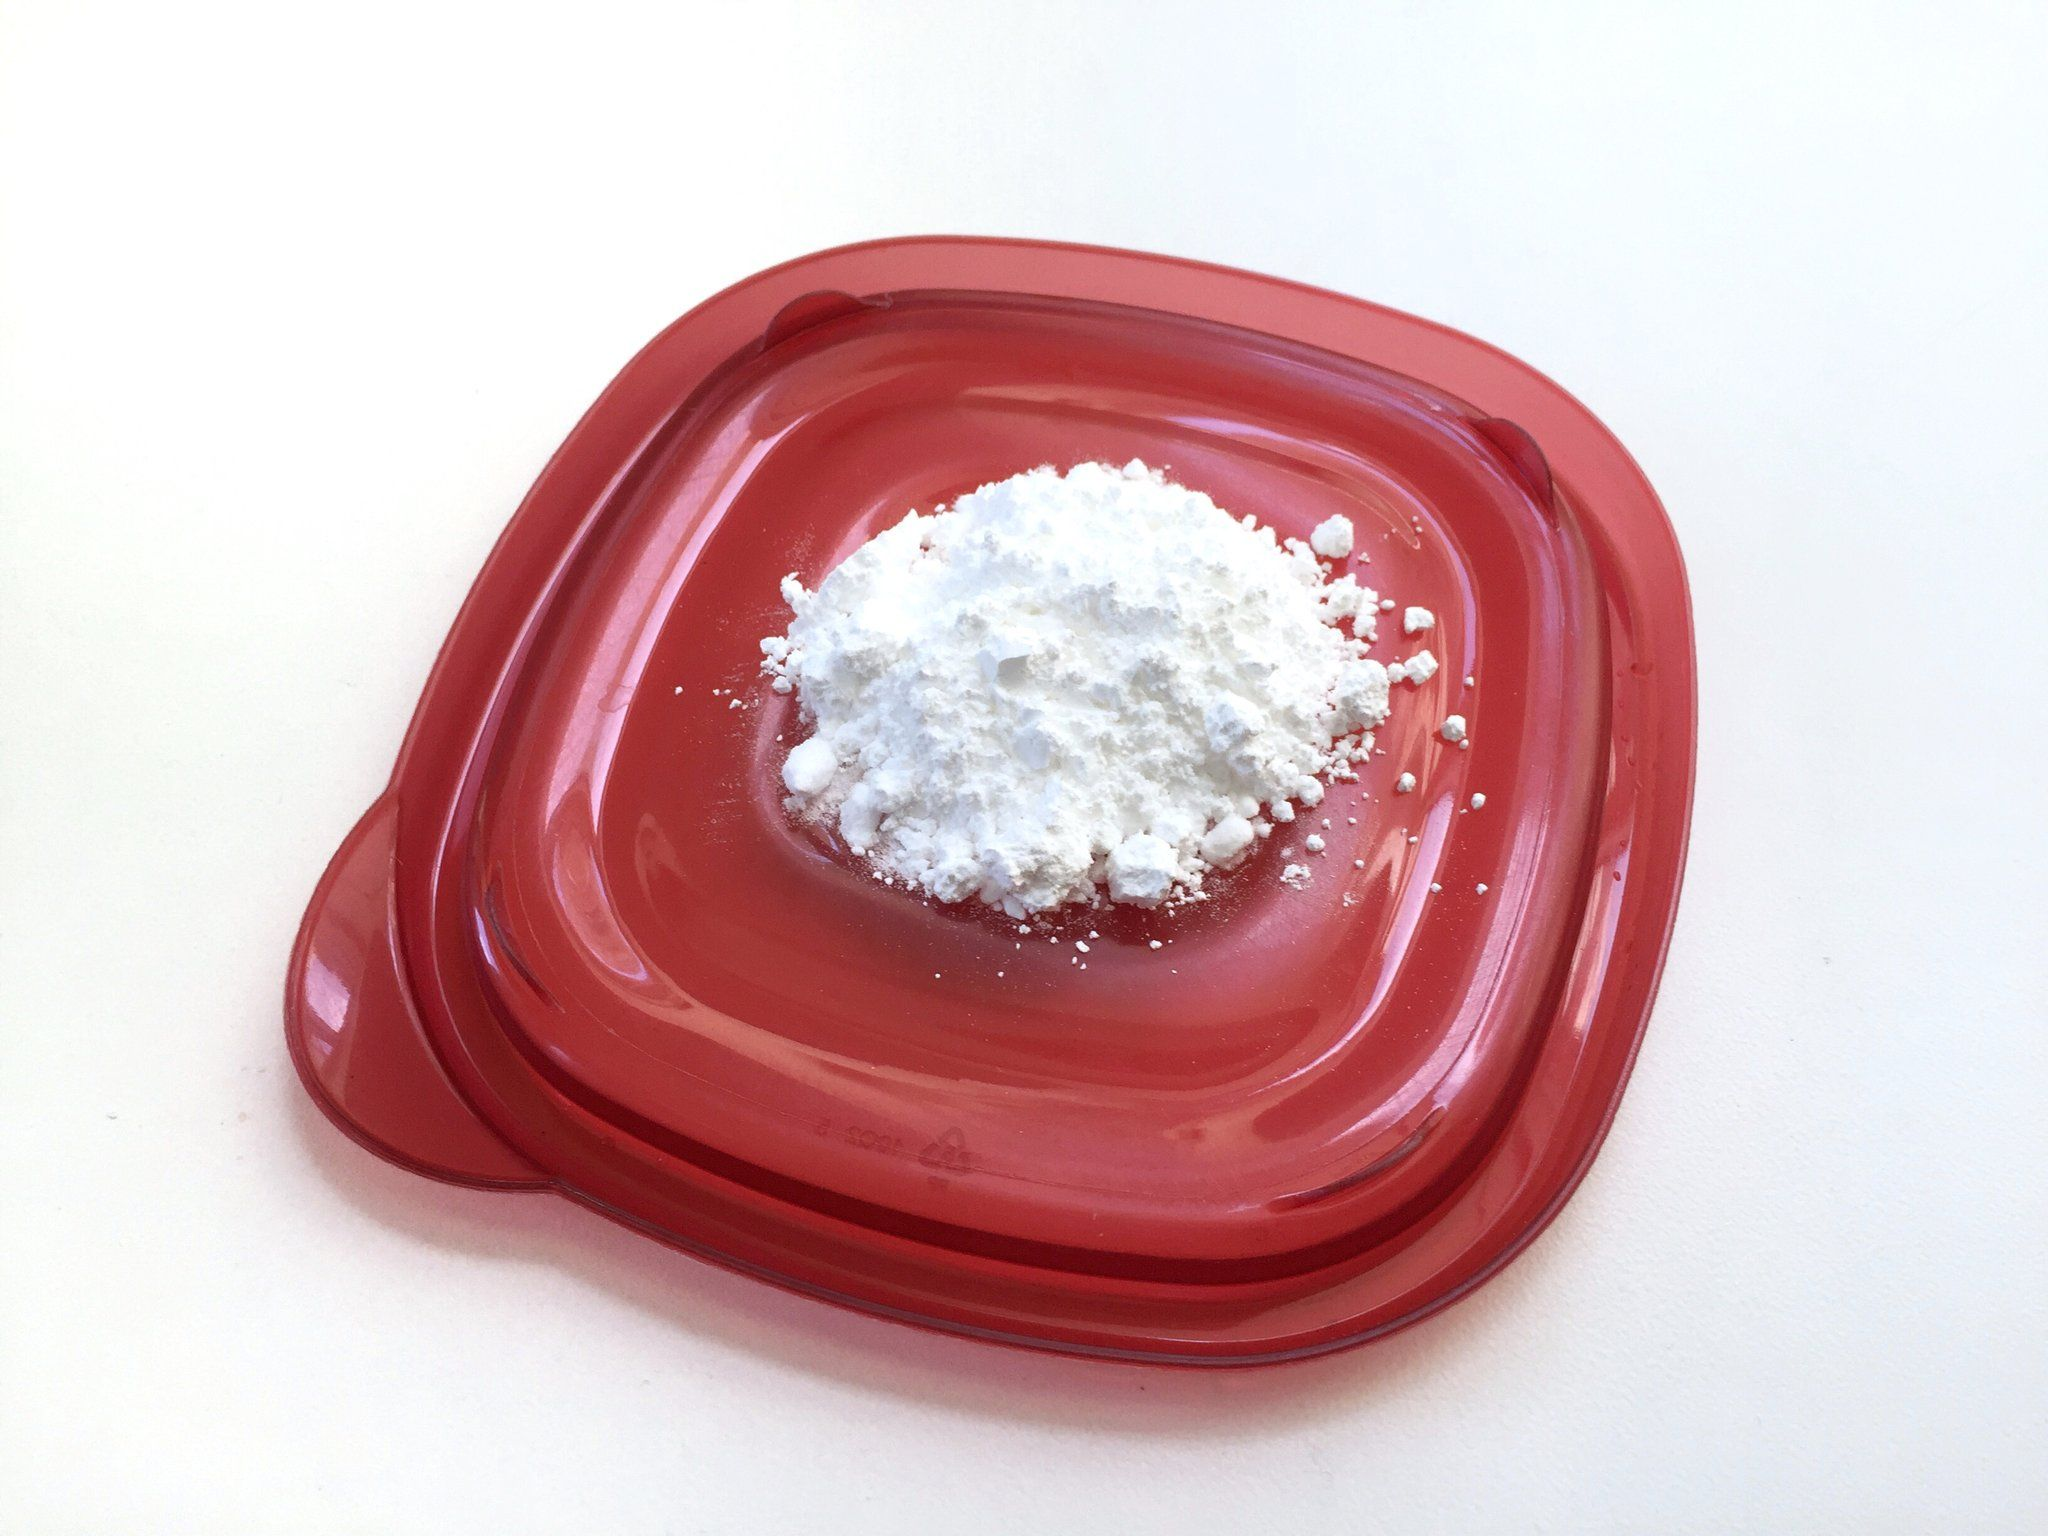 All You Need Is 2 Ingredients For This DIY Ant Trap (baking soda & powdered sugar)